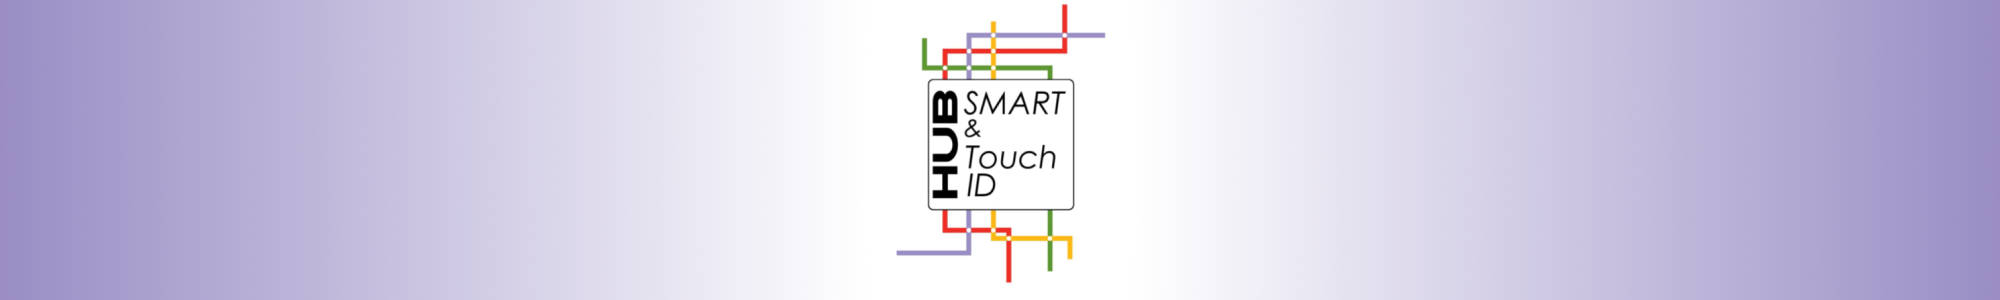 Smart Touch ID